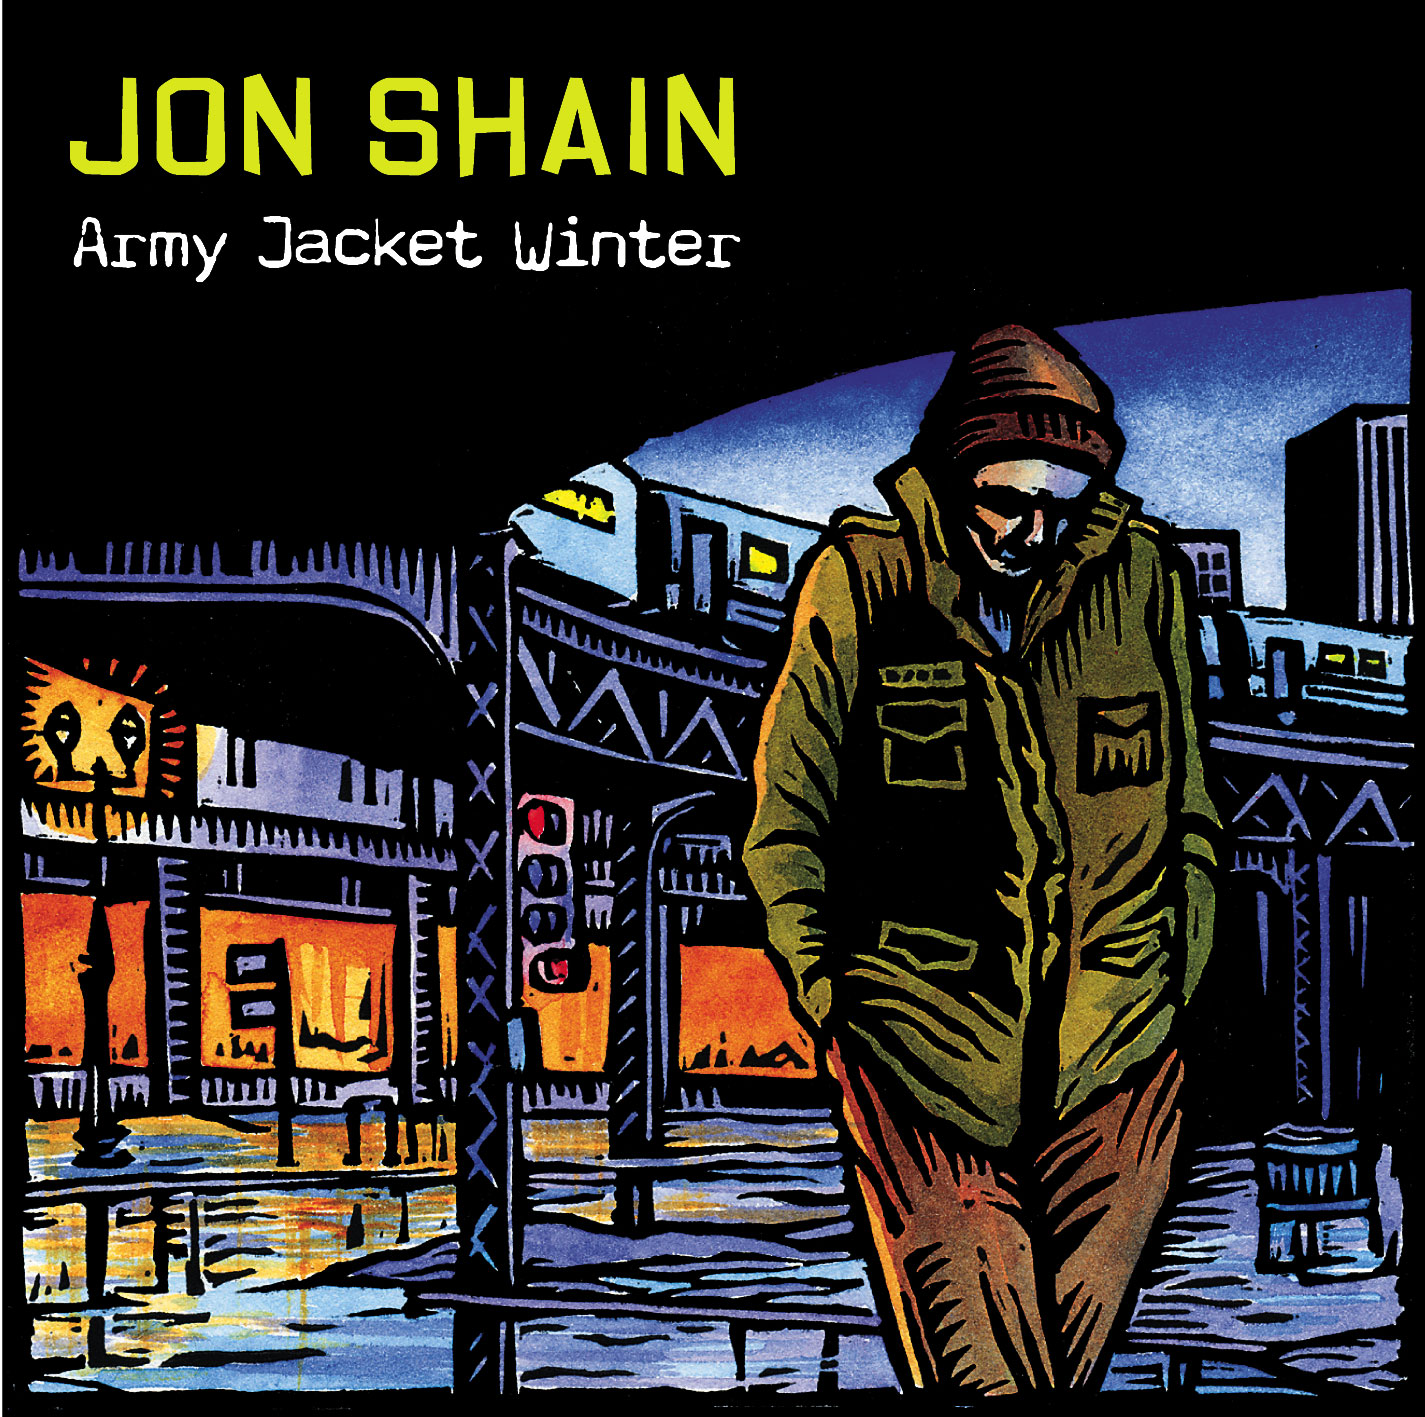 Army Jacket Winter Album Cover